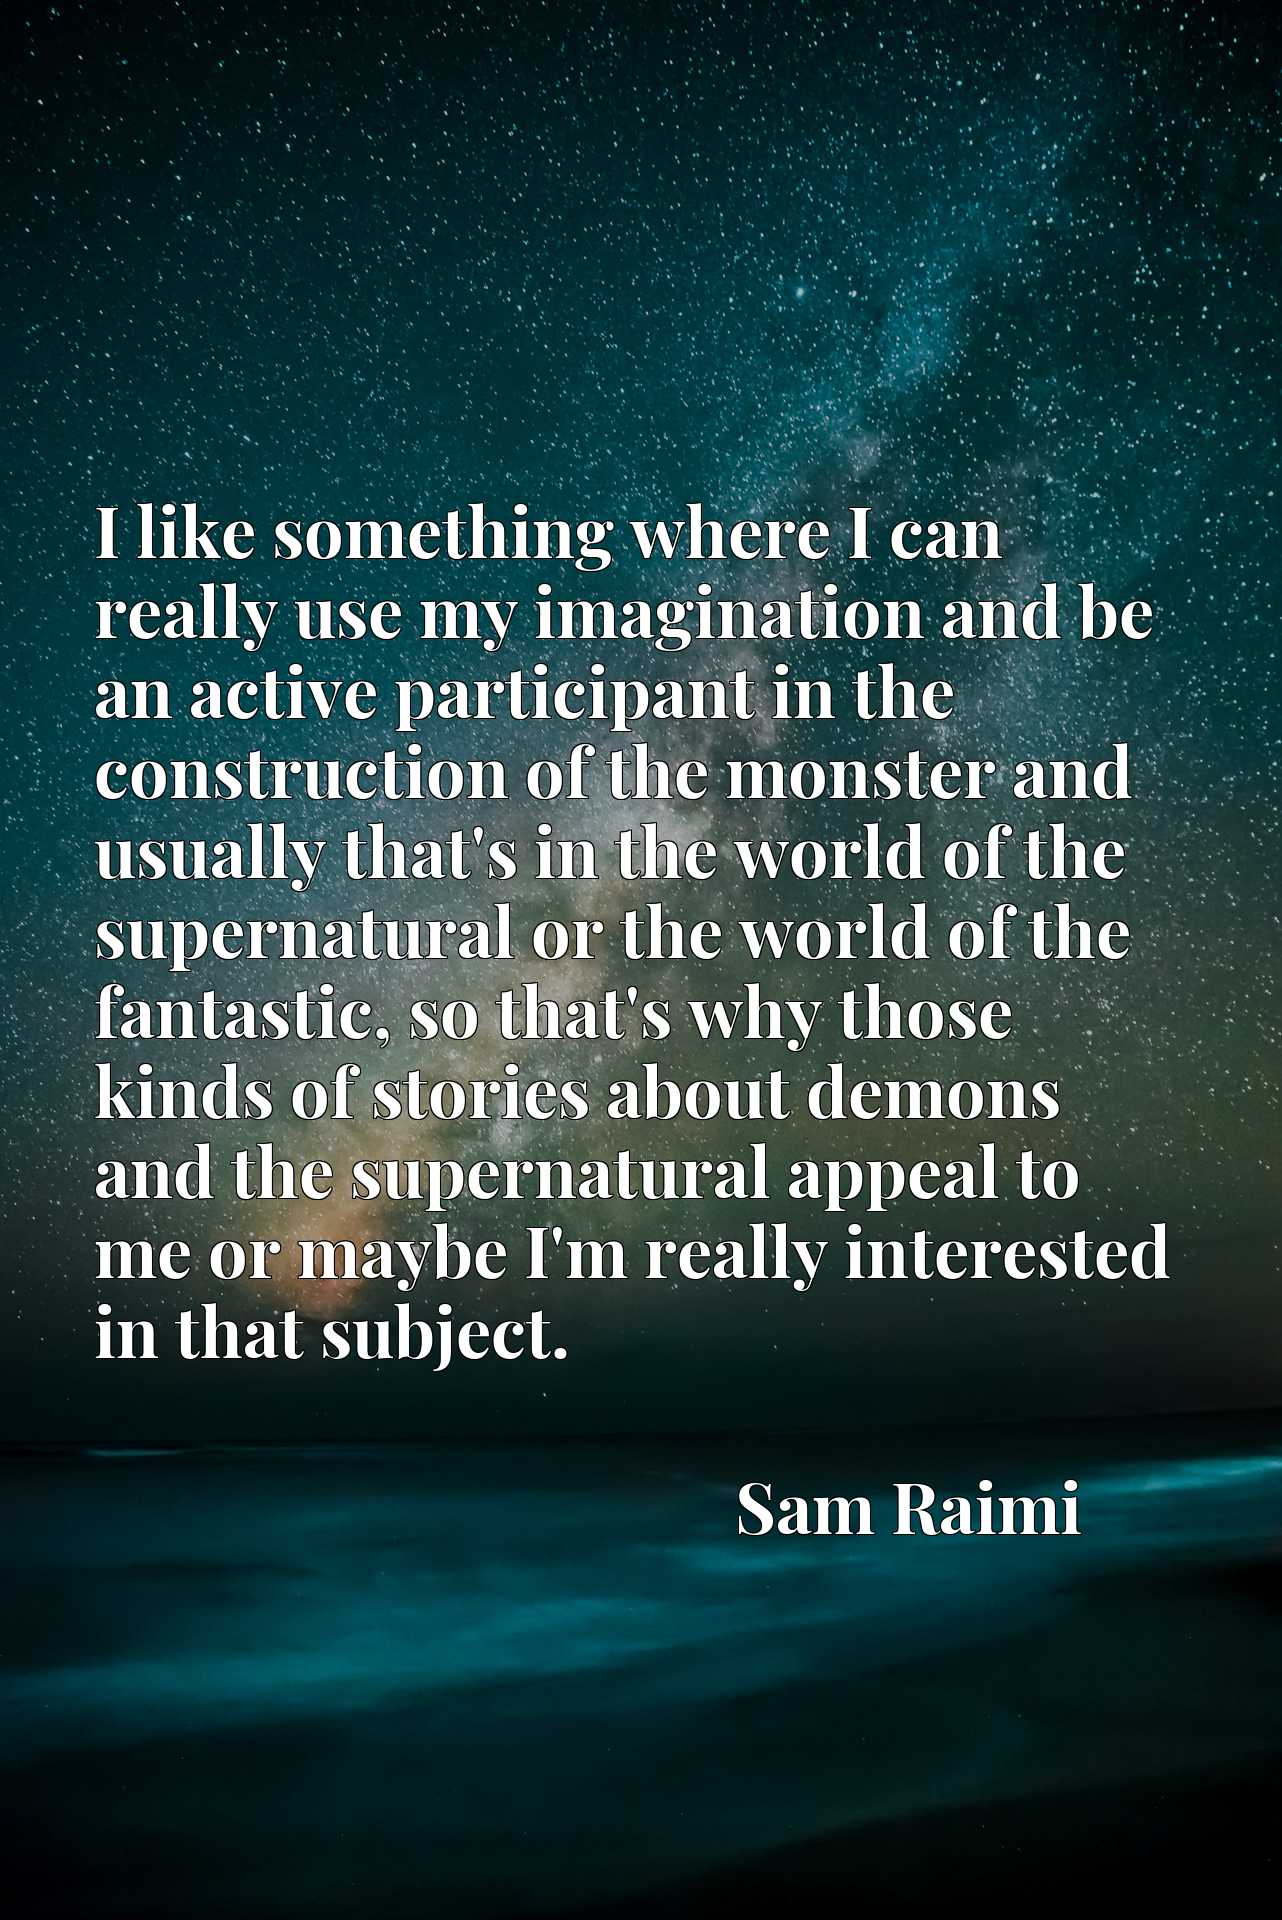 I like something where I can really use my imagination and be an active participant in the construction of the monster and usually that's in the world of the supernatural or the world of the fantastic, so that's why those kinds of stories about demons and the supernatural appeal to me or maybe I'm really interested in that subject.